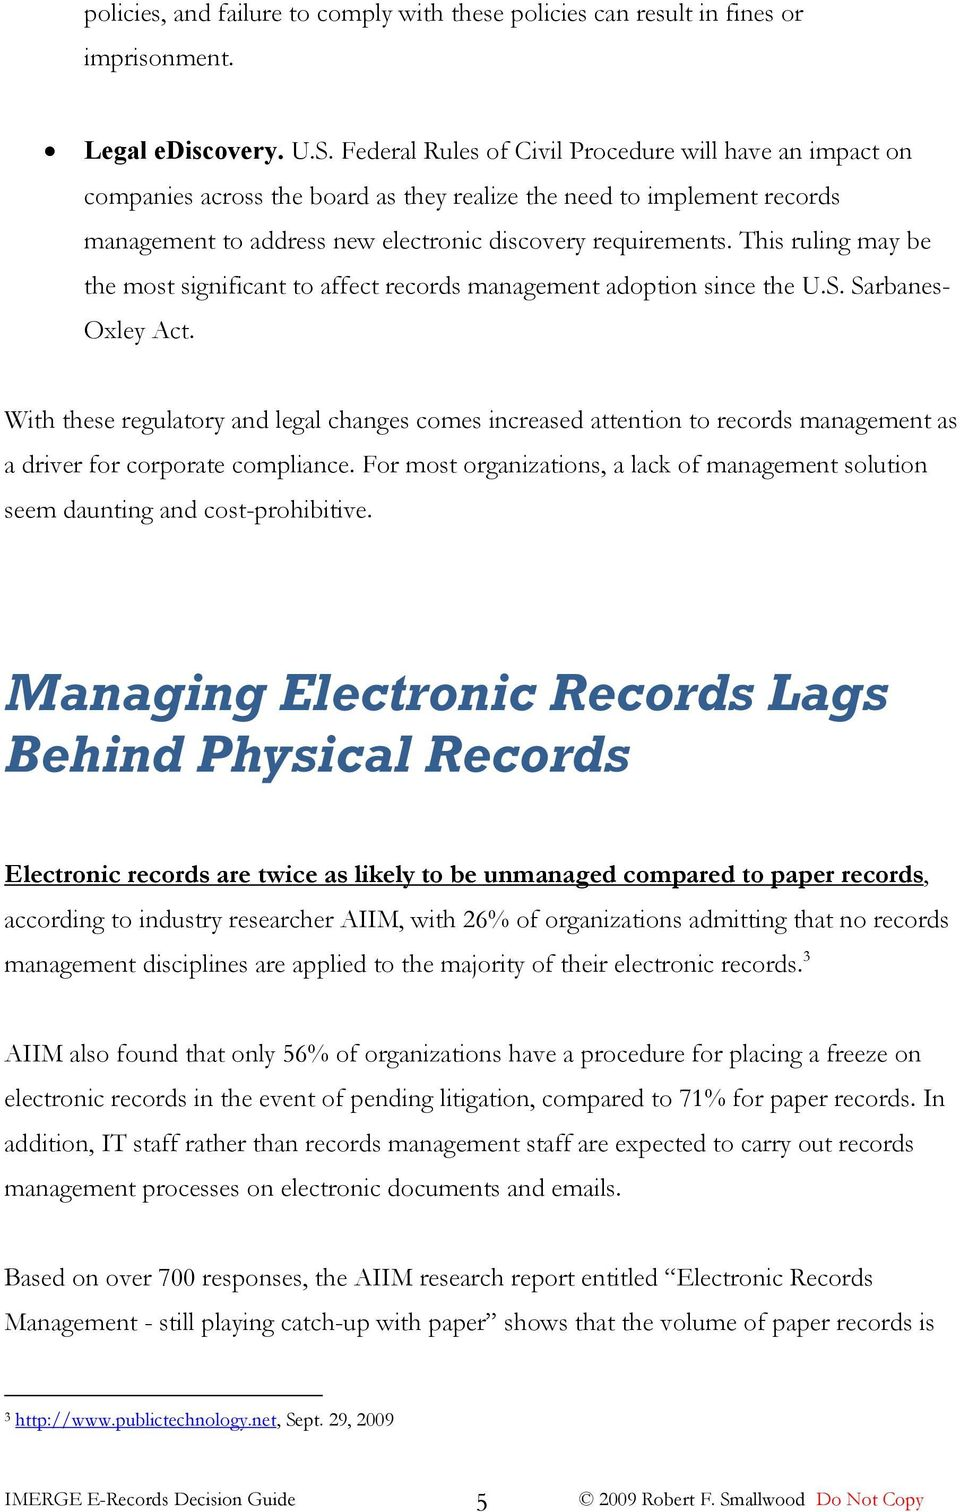 This ruling may be the most significant to affect records management adoption since the U.S. Sarbanes- Oxley Act.